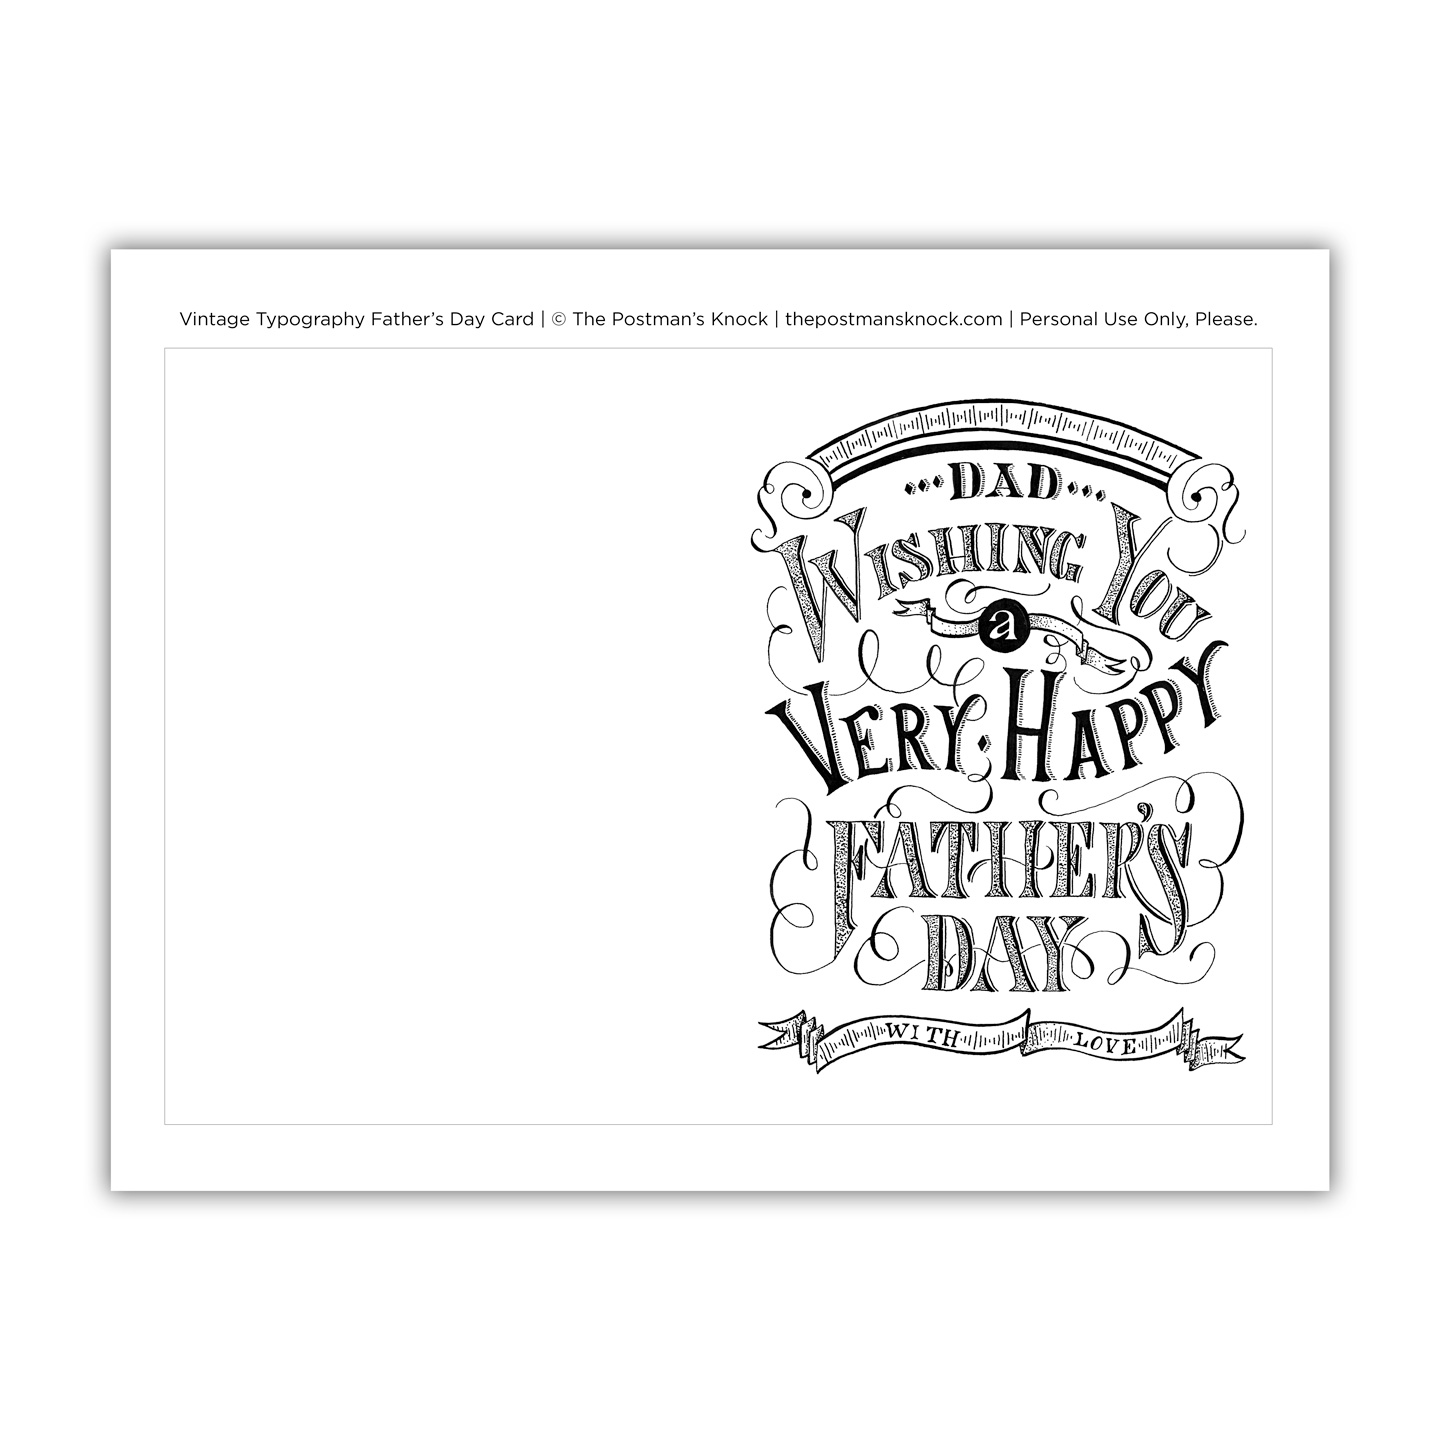 photograph regarding Printable Fathers Day Card identify Basic Typography Fathers Working day Card